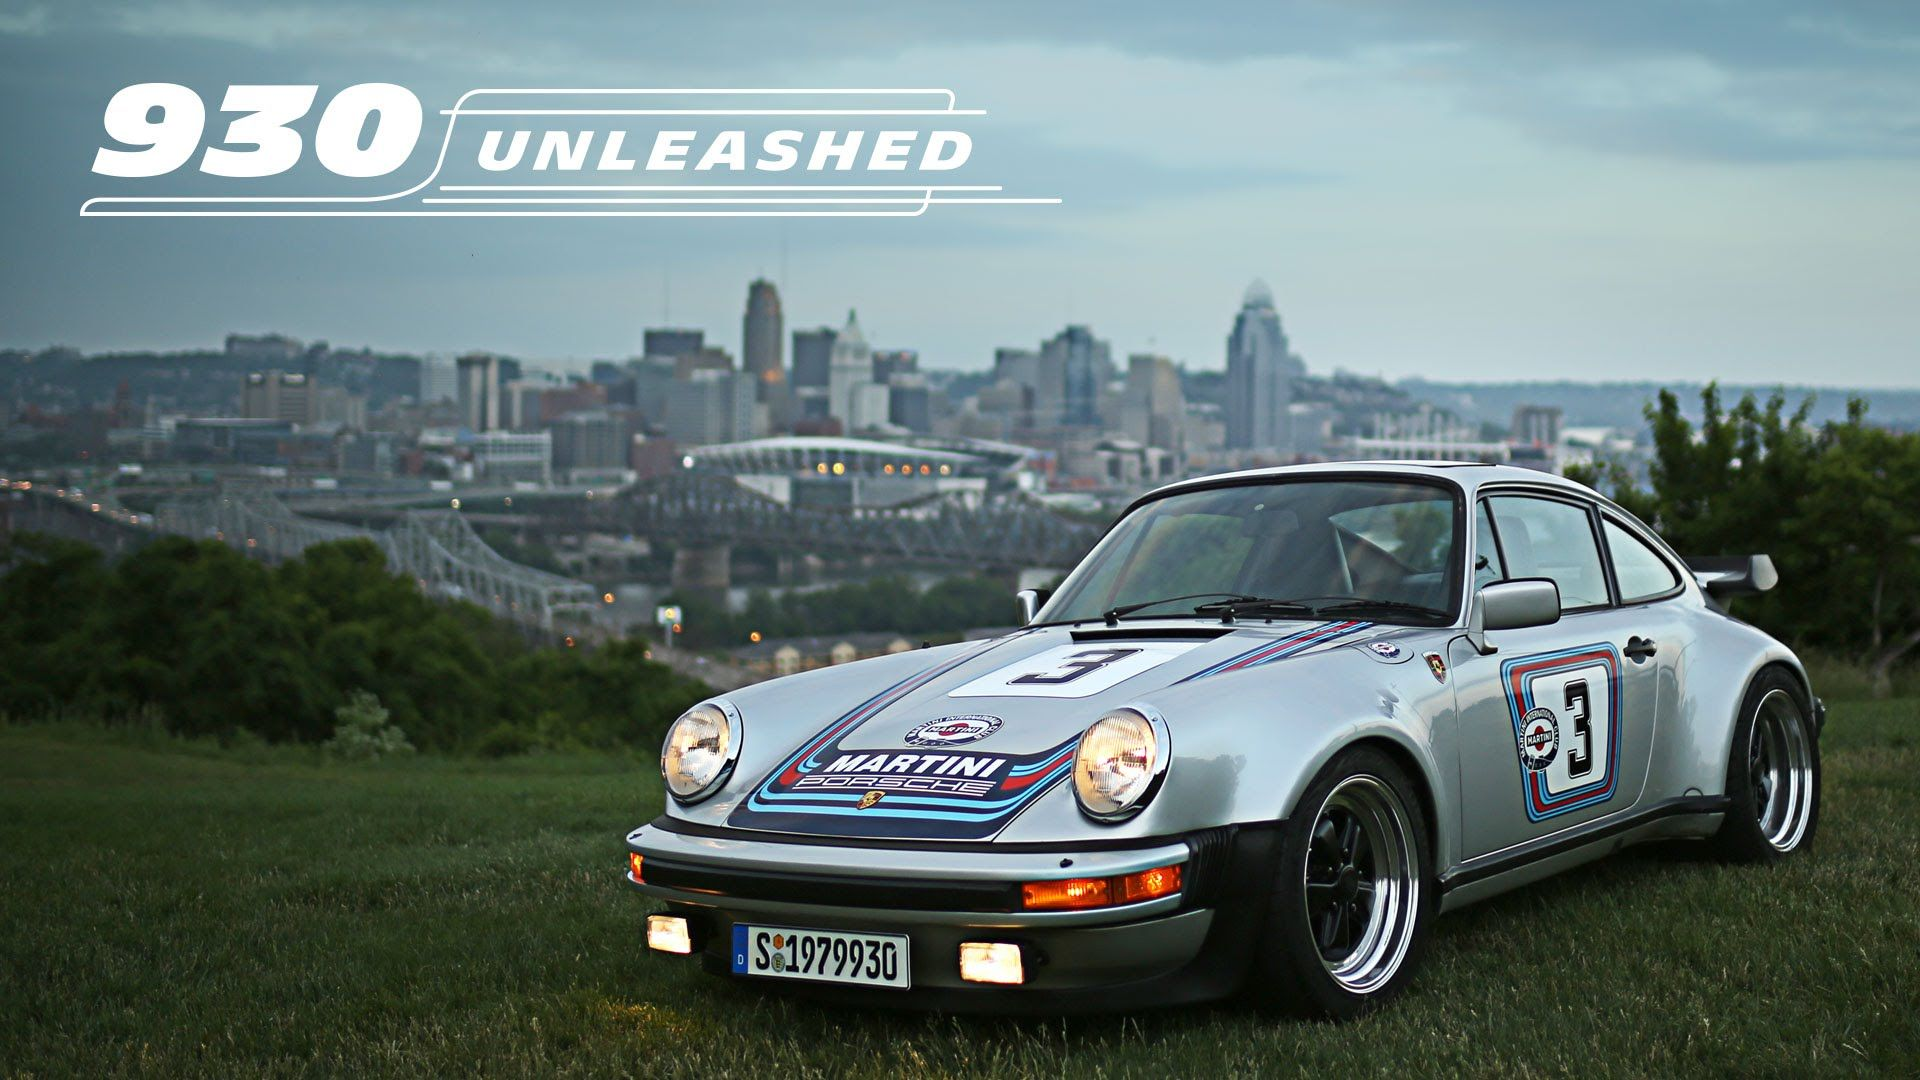 This Porsche 930 Turbo Has Been Unleashed Petrolicious Porsche 930 Porsche 930 Turbo Porsche